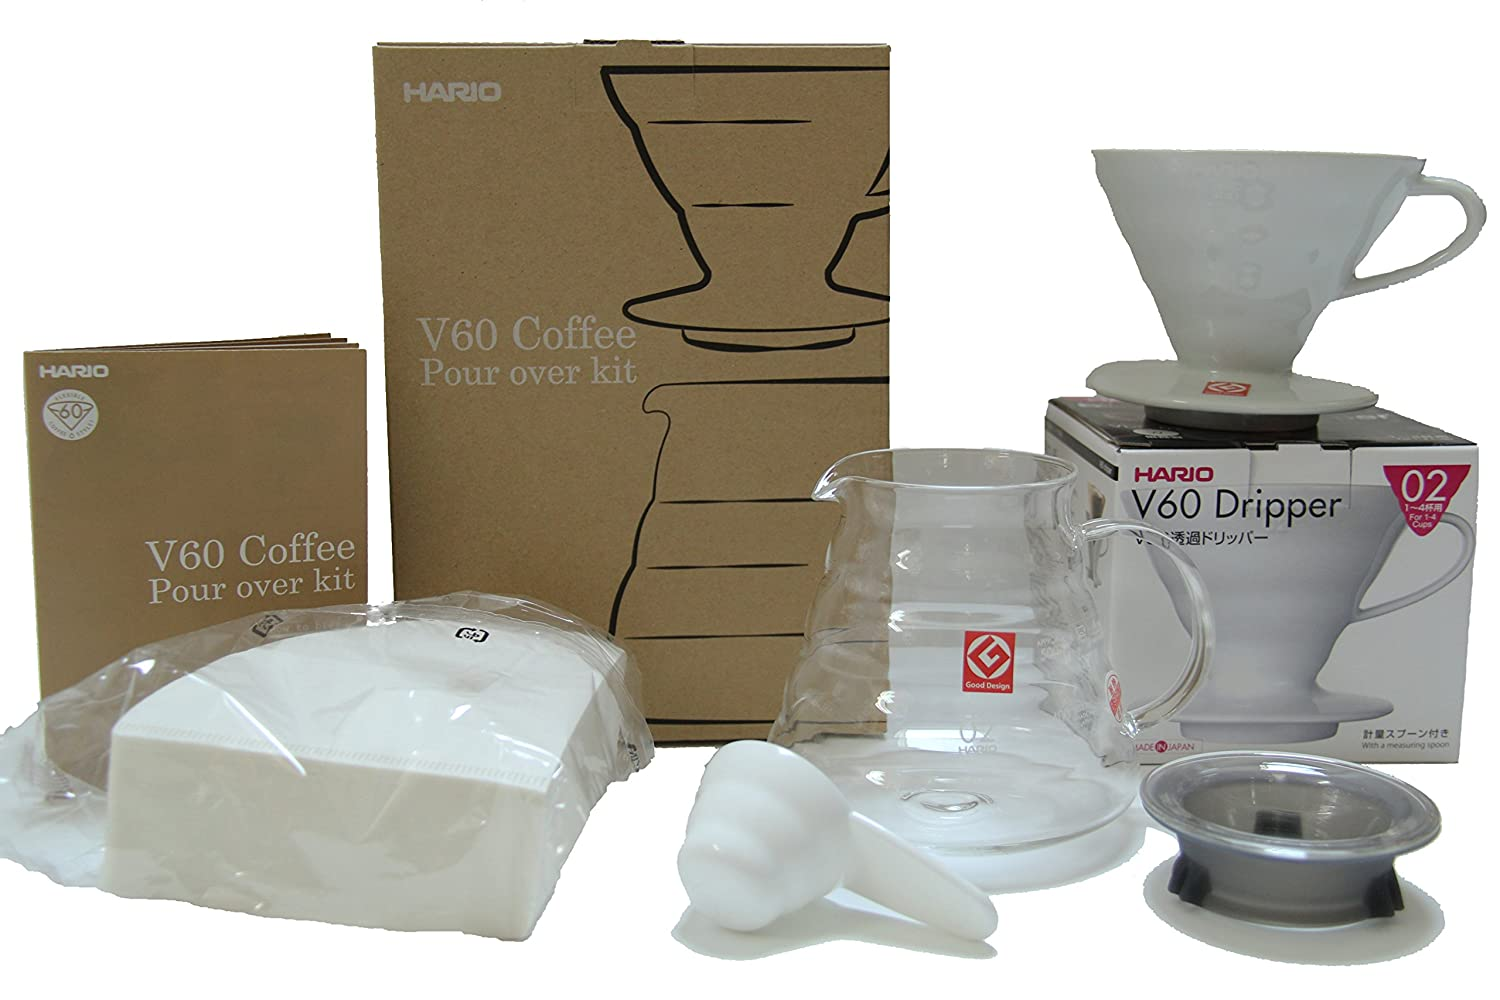 Hario V60 Coffee Pour Over Kit Bundle - Comes with Ceramic Dripper, Measuring Spoon, Glass Pot, and Package of 100 Filters